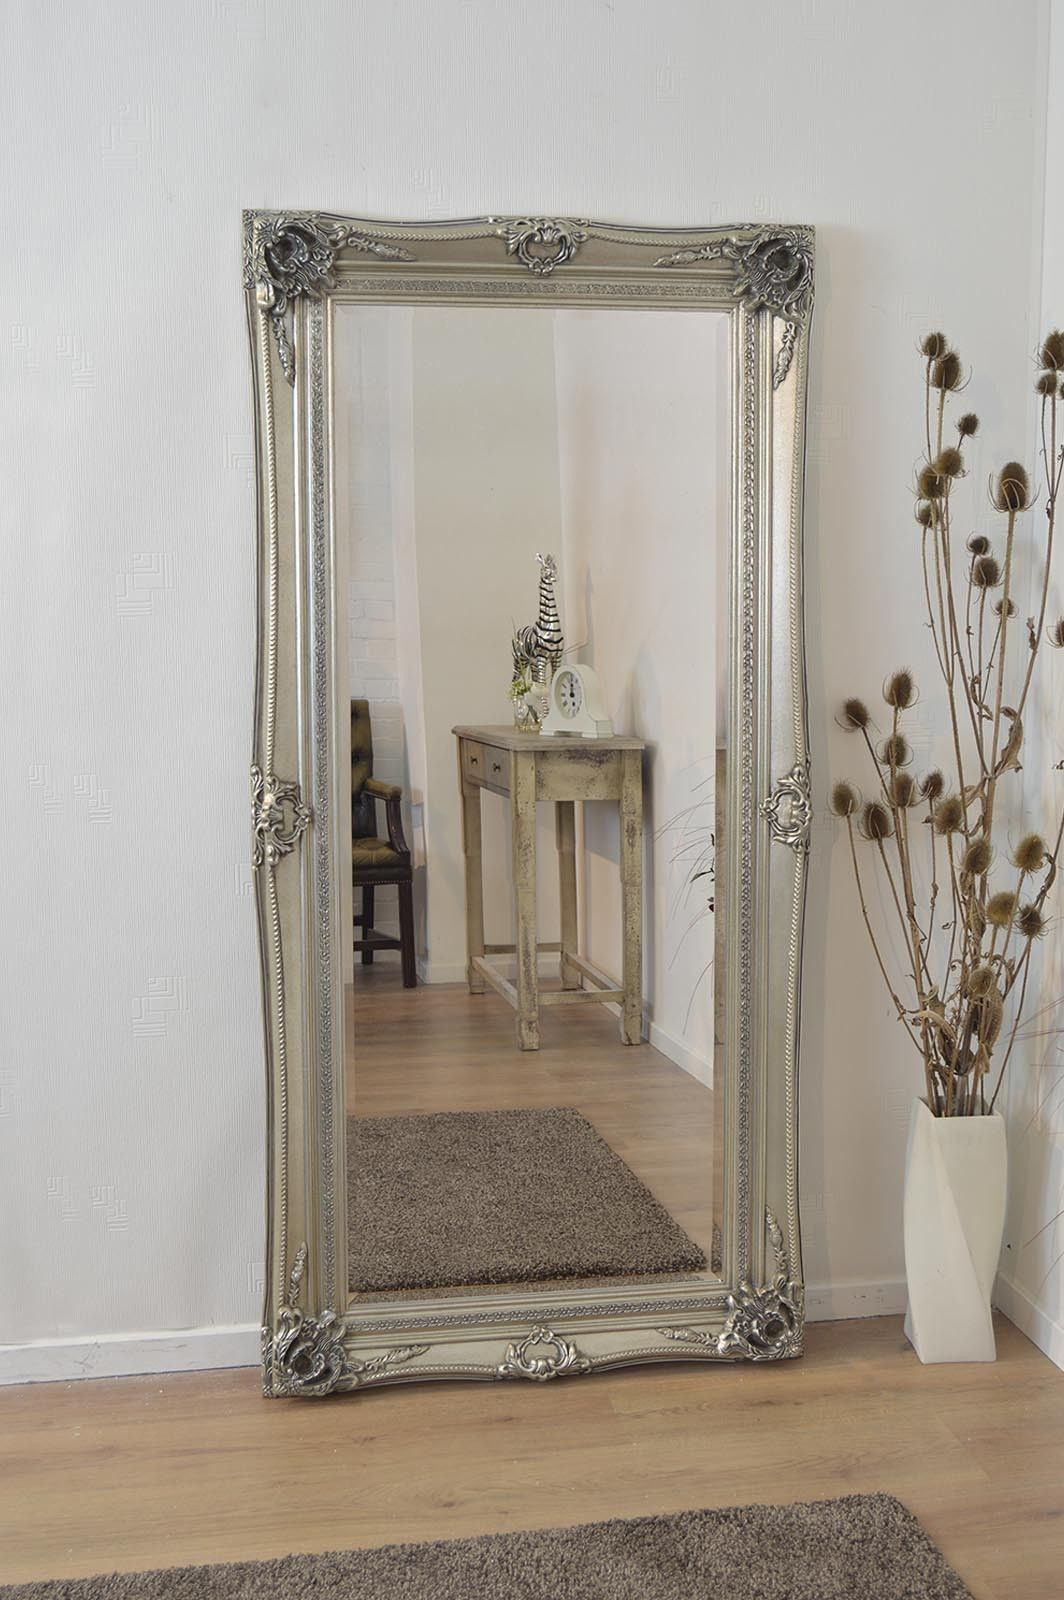 Large silver ornate antique shabby chic wall mirror 6ft x 3ft large silver ornate antique shabby chic wall mirror 6ft x 3ft 178cm x 87cm amipublicfo Choice Image